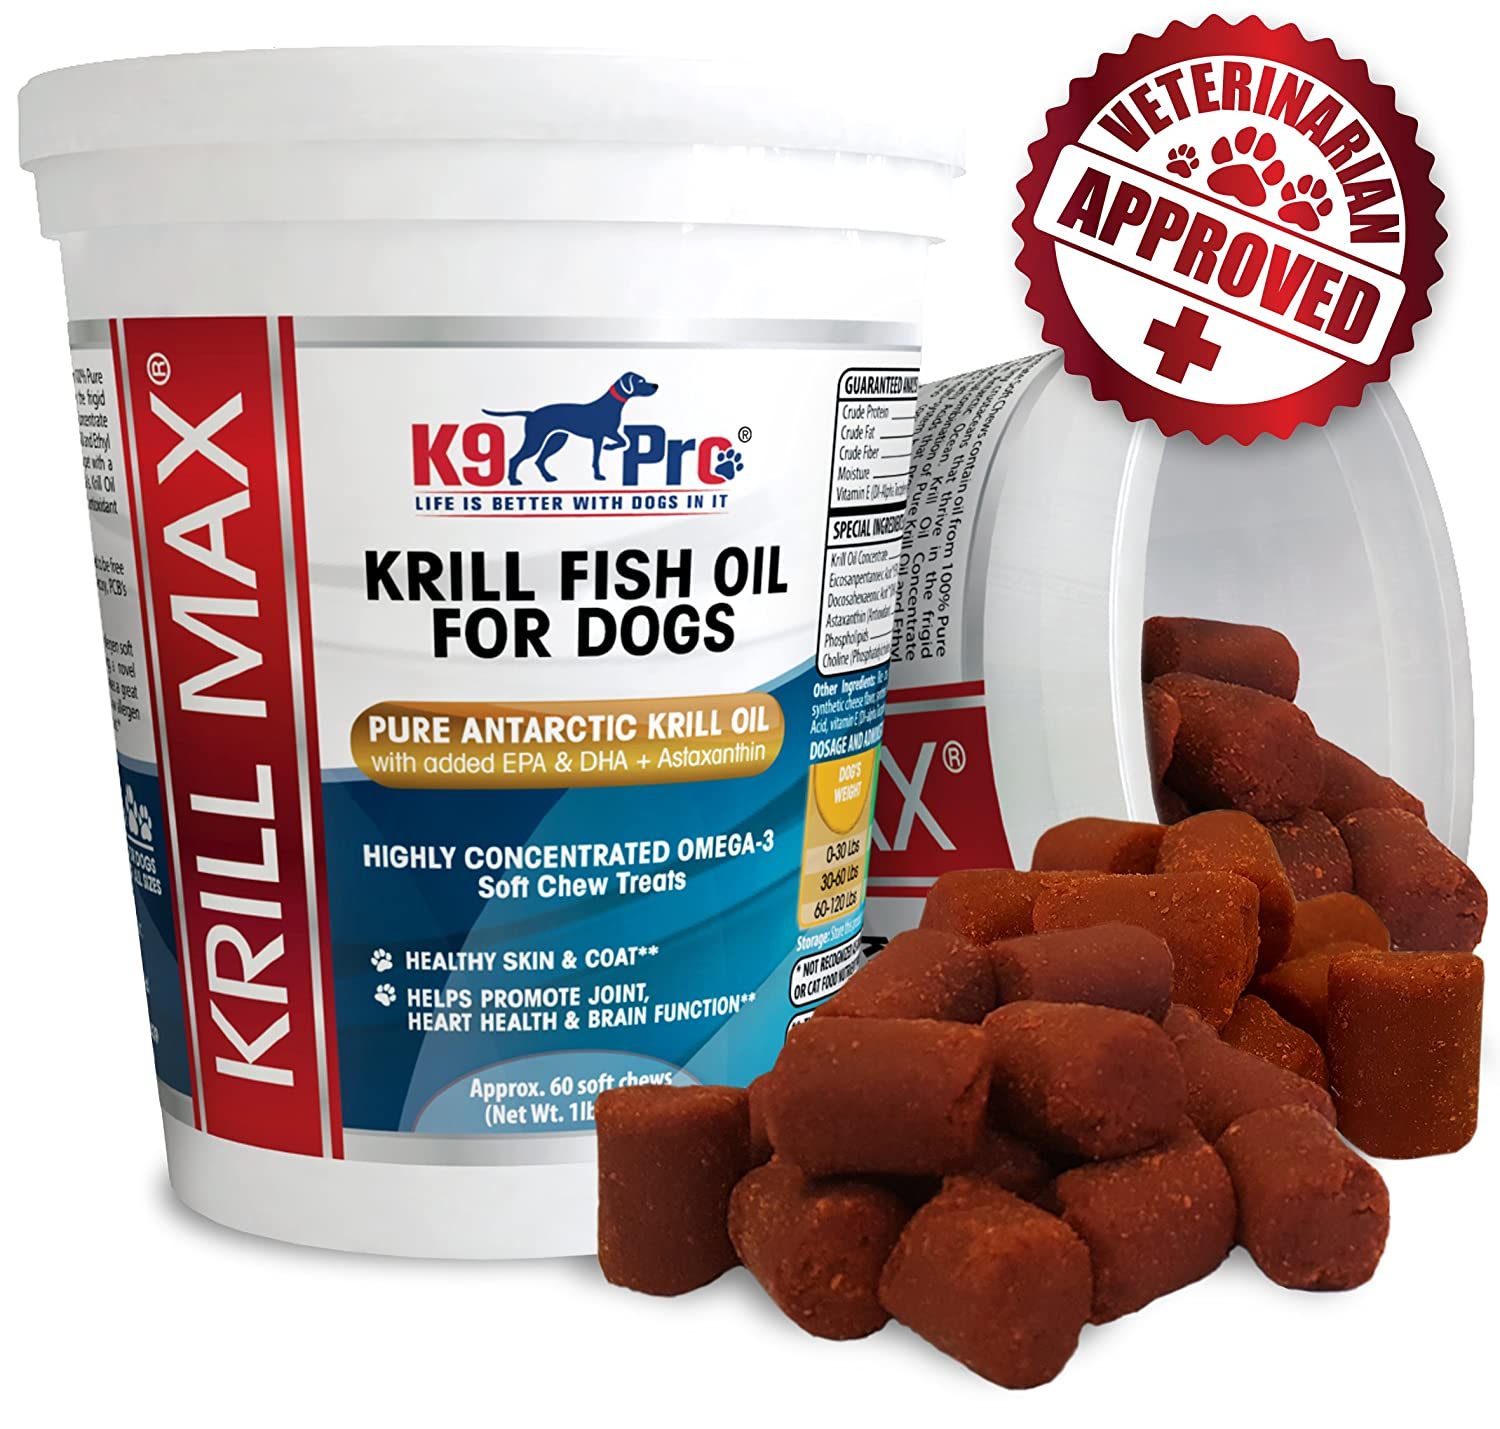 Krill MAX Fish Oil for Dogs – Soft Moist Tasty Chews 350mg Omega 3 Best Dog Joint Supplement with DHA EPA Full 2 Month Supply Plus Astaxanthin and Vitamin E – for Hip Joints Skin and Coat